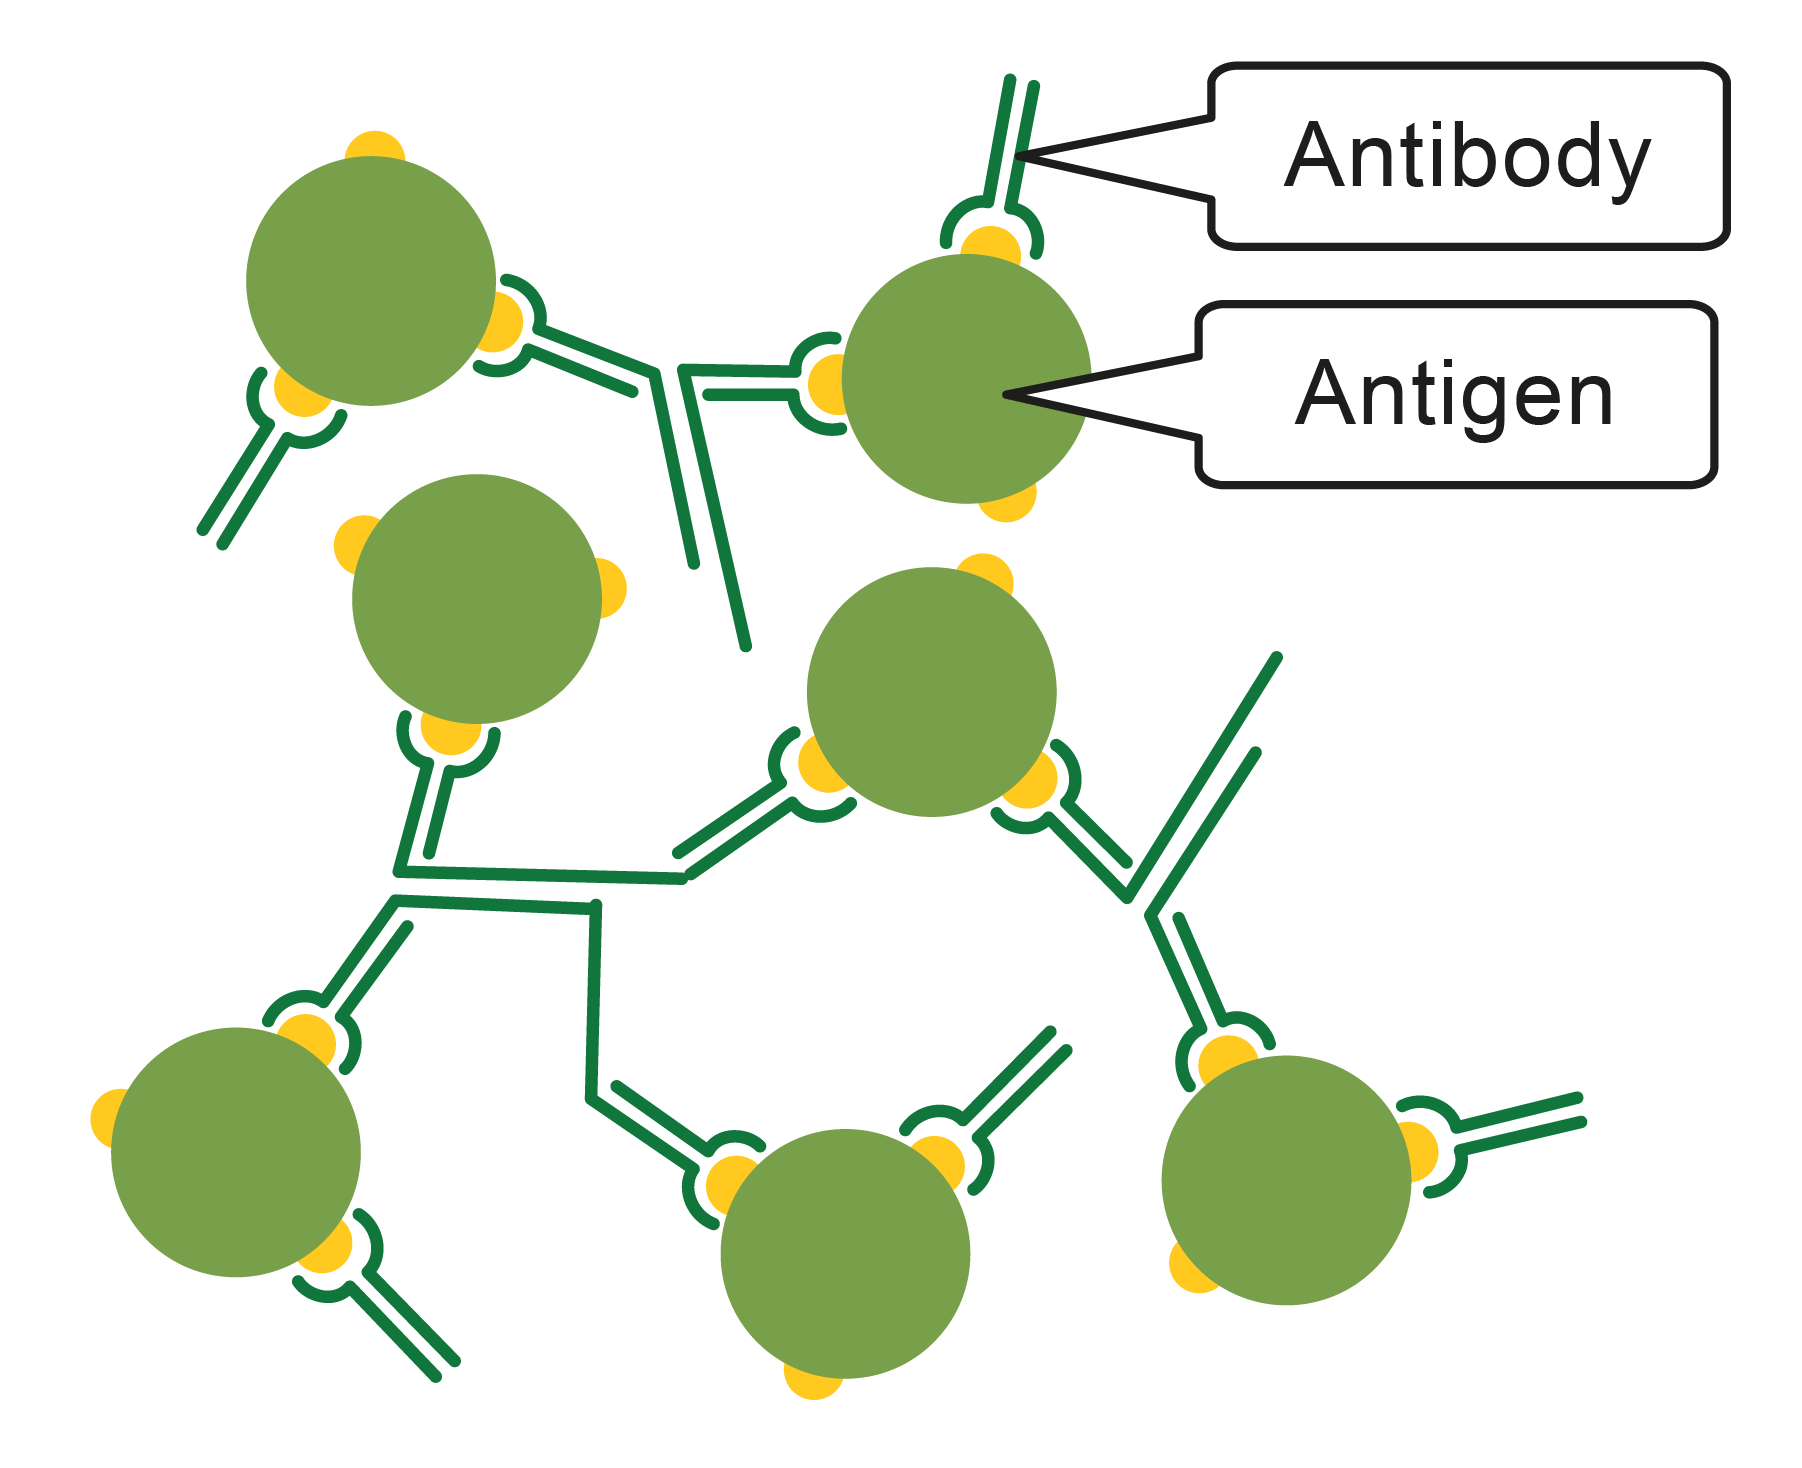 Image of antigens and antibody